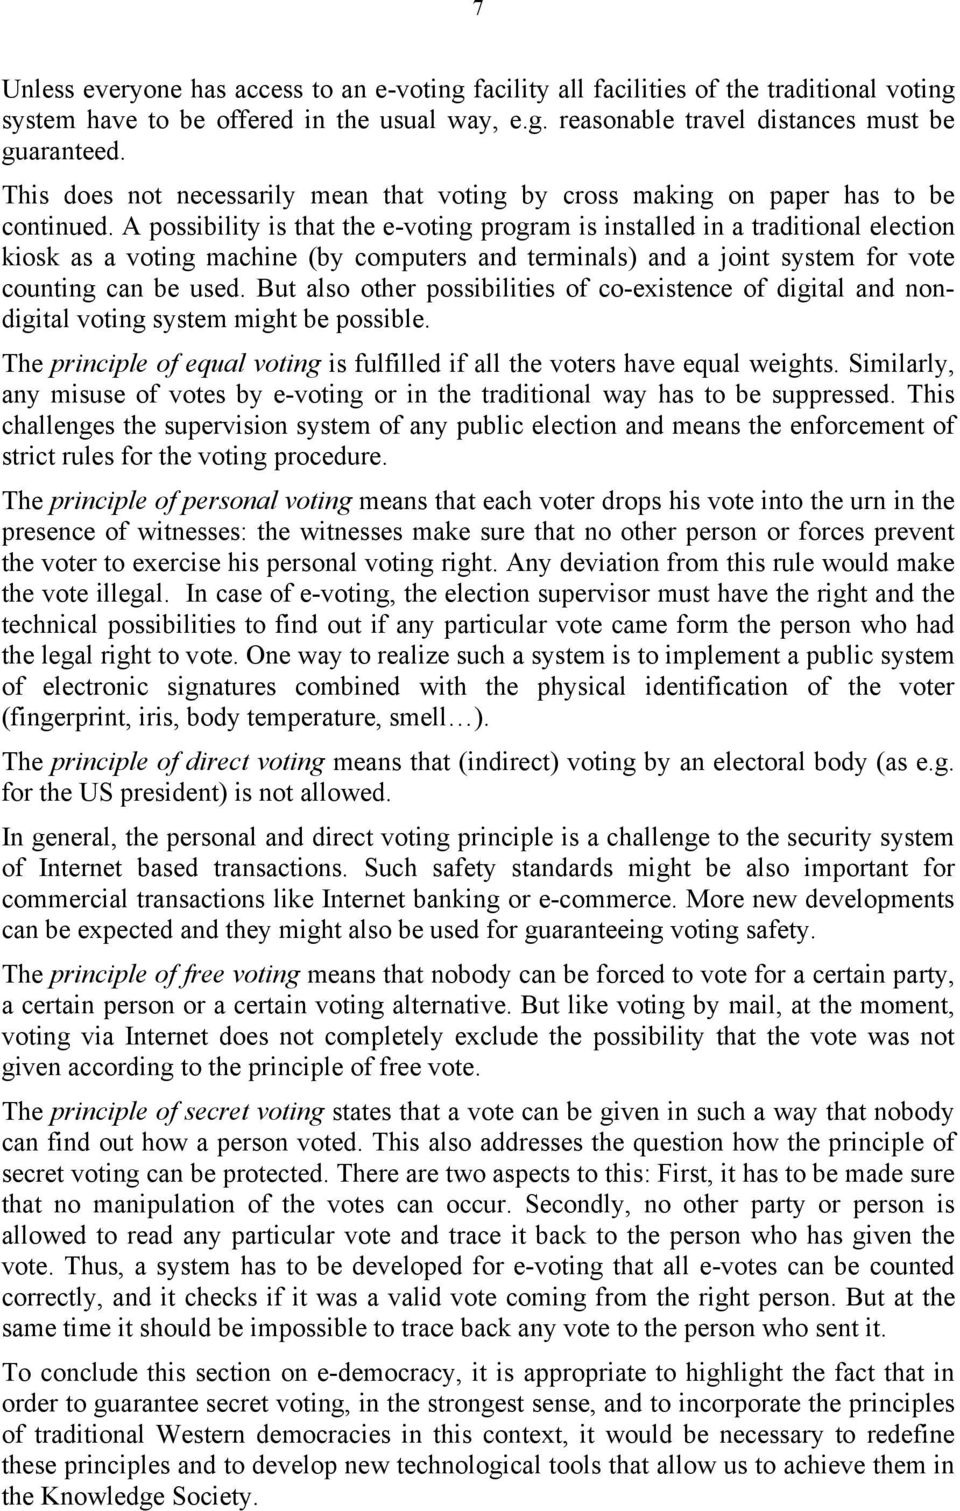 A possibility is that the e-voting program is installed in a traditional election kiosk as a voting machine (by computers and terminals) and a joint system for vote counting can be used.